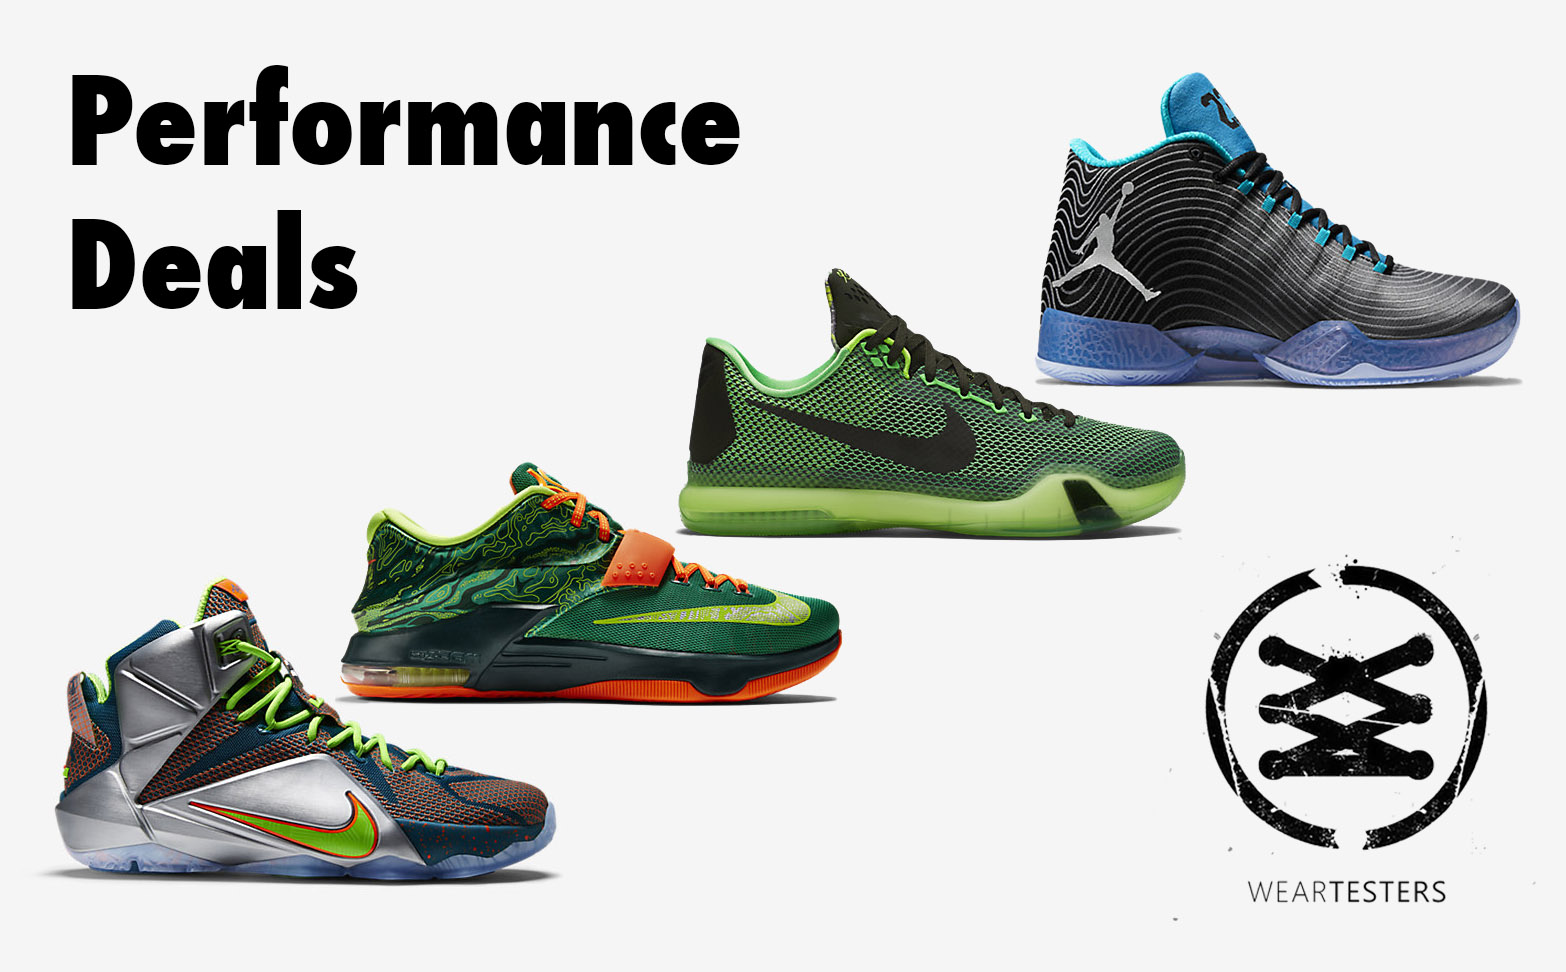 37bd3c1b6eb ... coupon code for kd9 8 performance deals basketball shoes for 20 off at  nike store 8bd9c